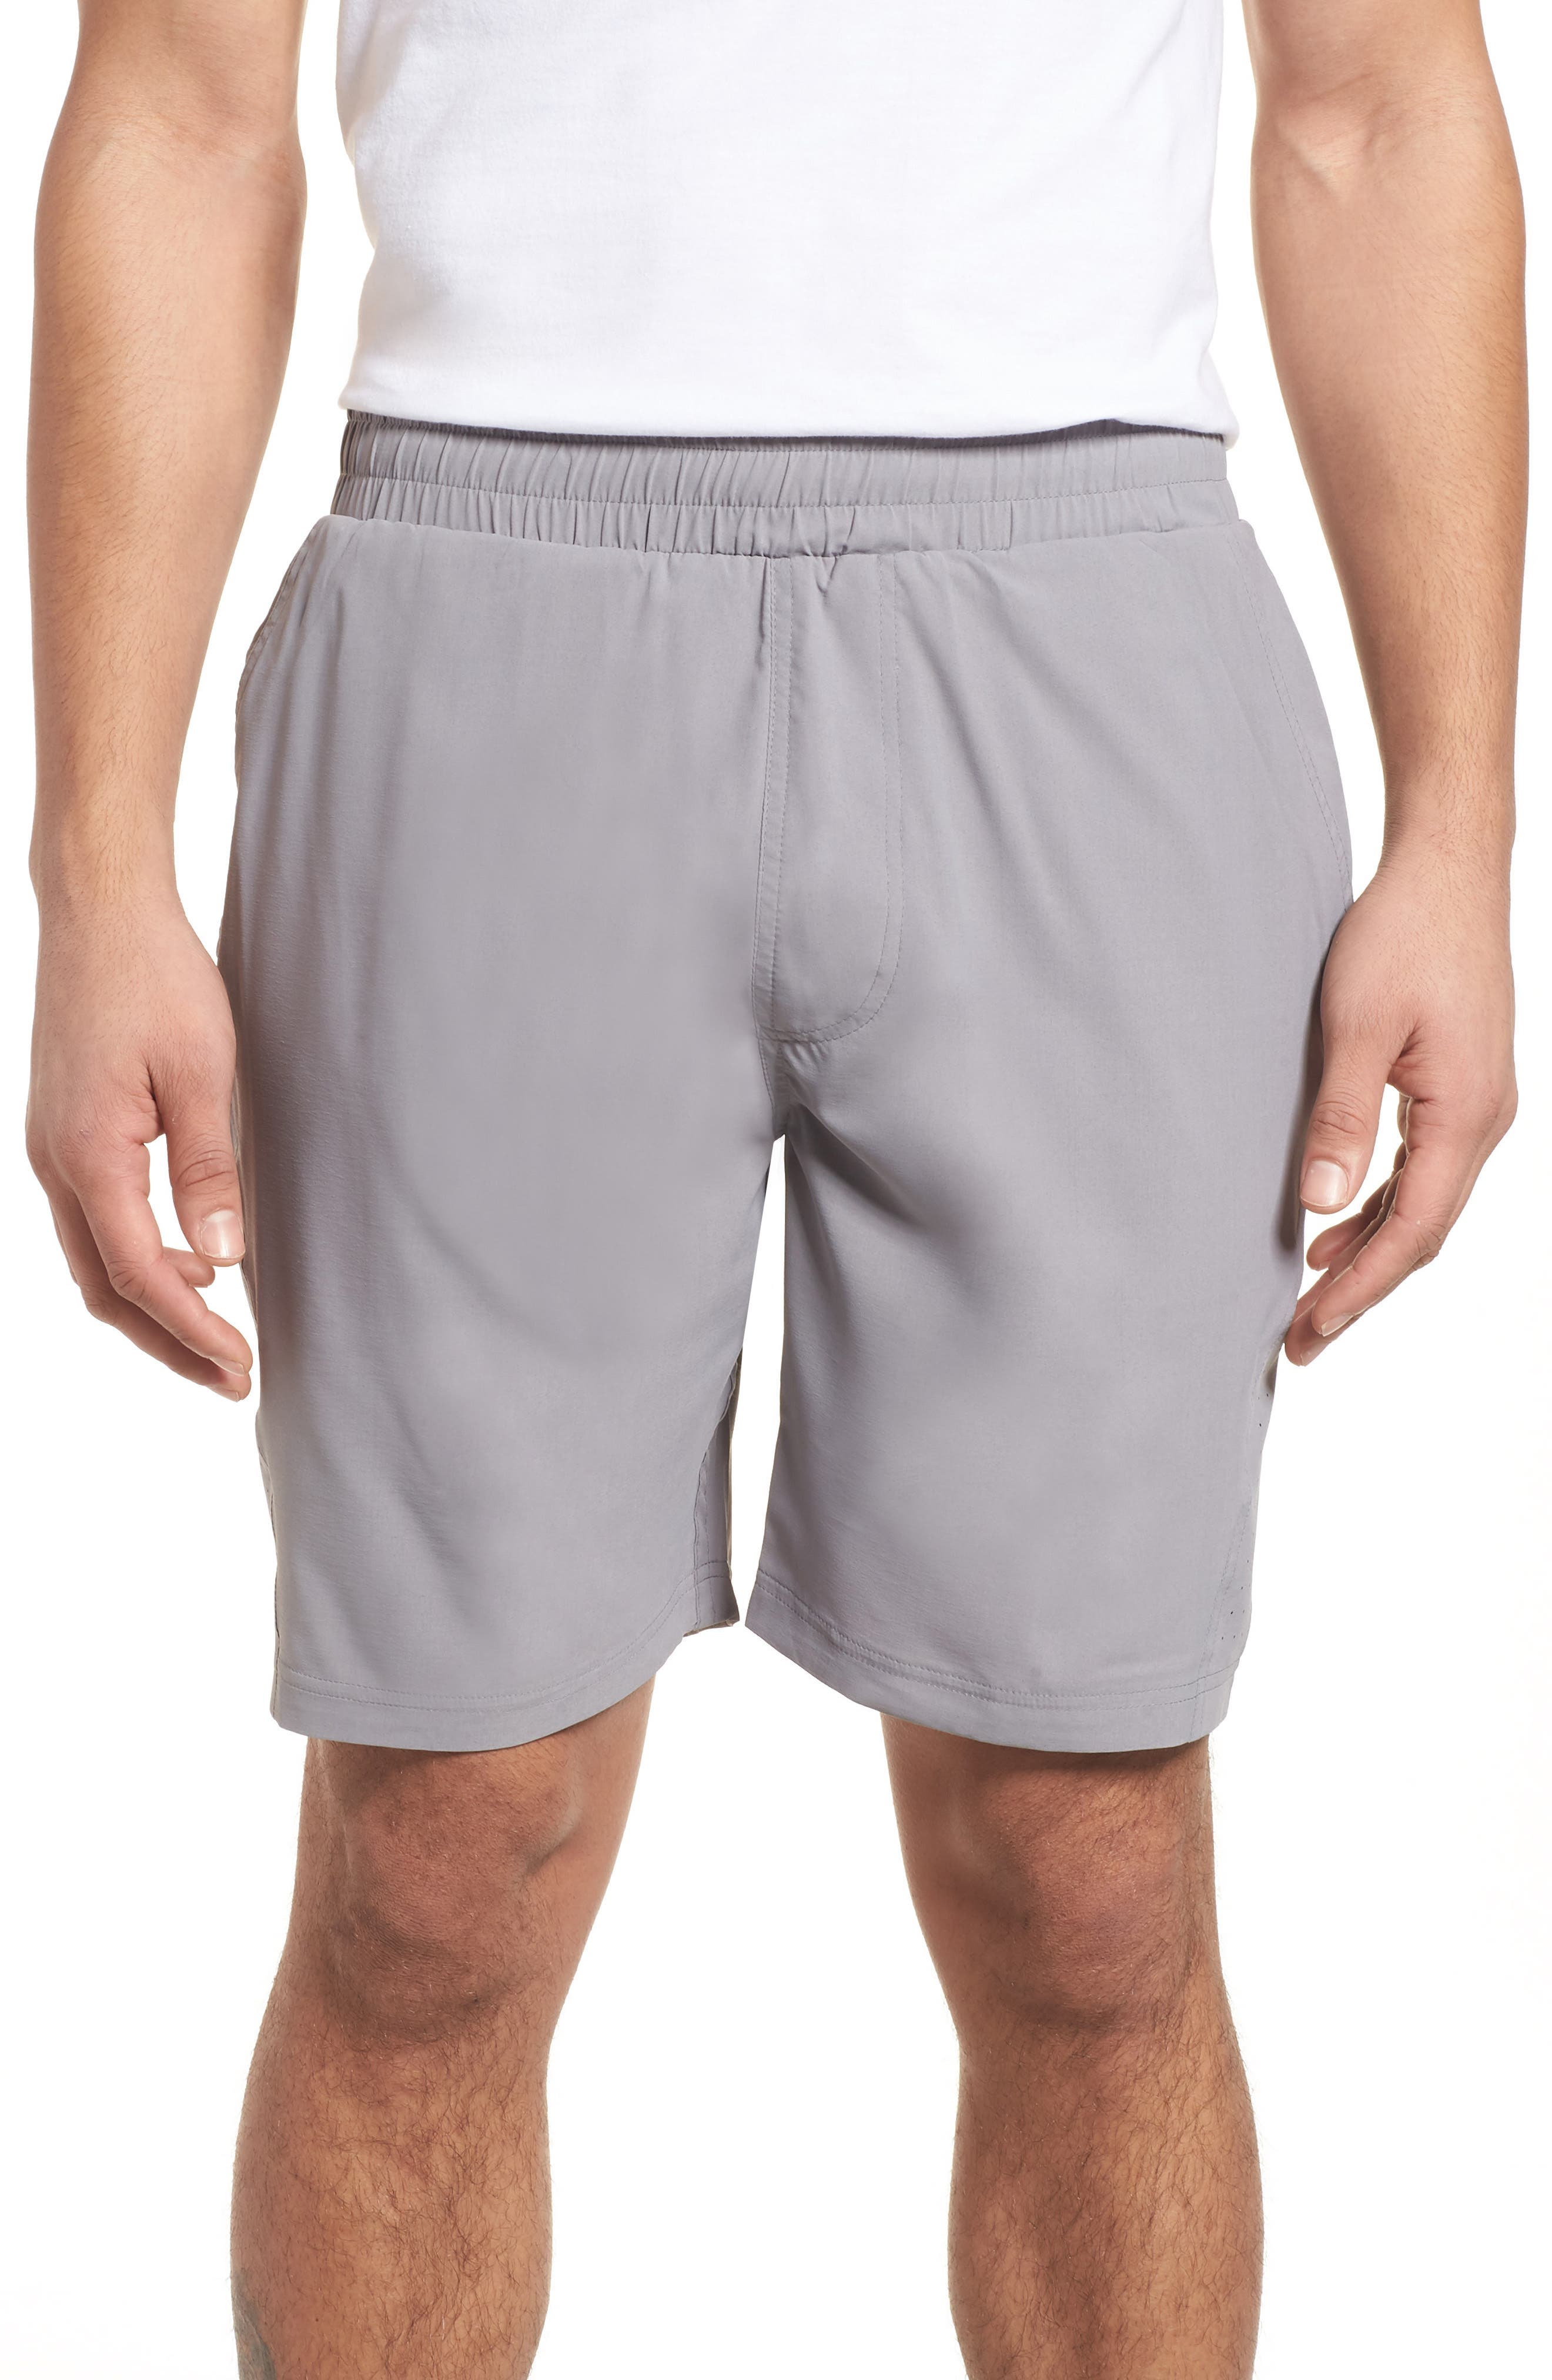 Main Image - tasc Performance Charge Water Resistant Athletic Shorts